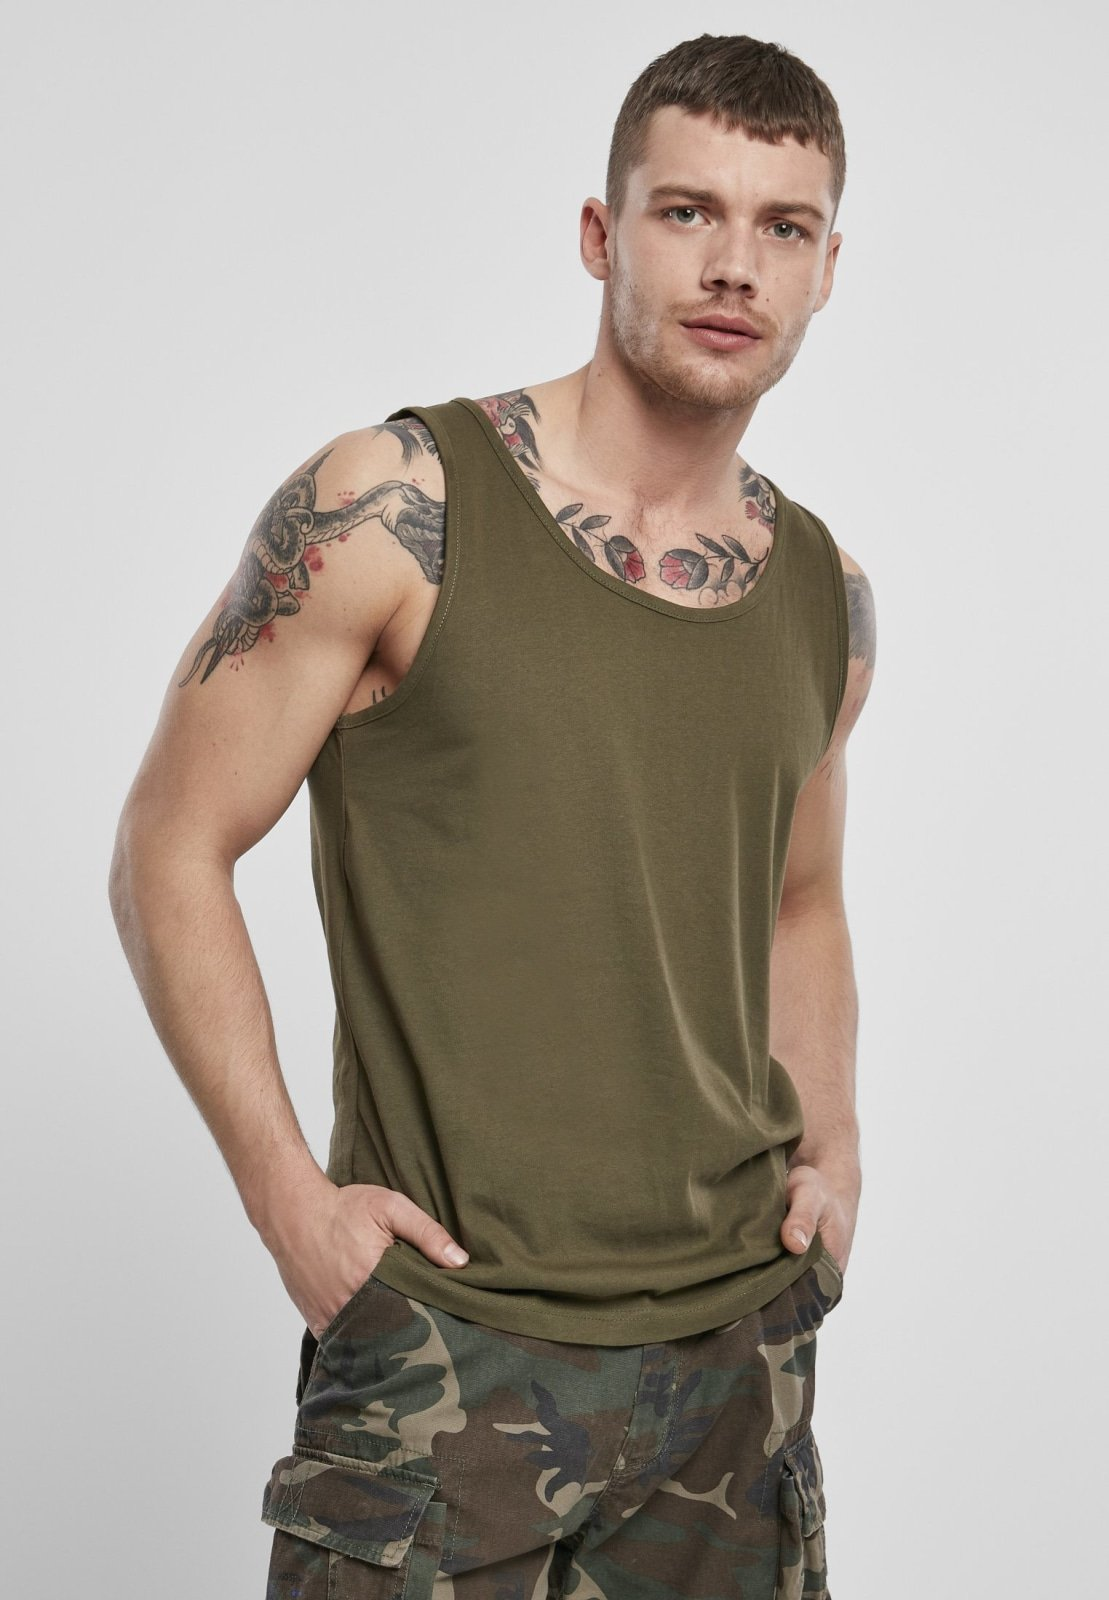 Brandit Tank top (7 Colors | s - 5xl) T-shirt Brandit